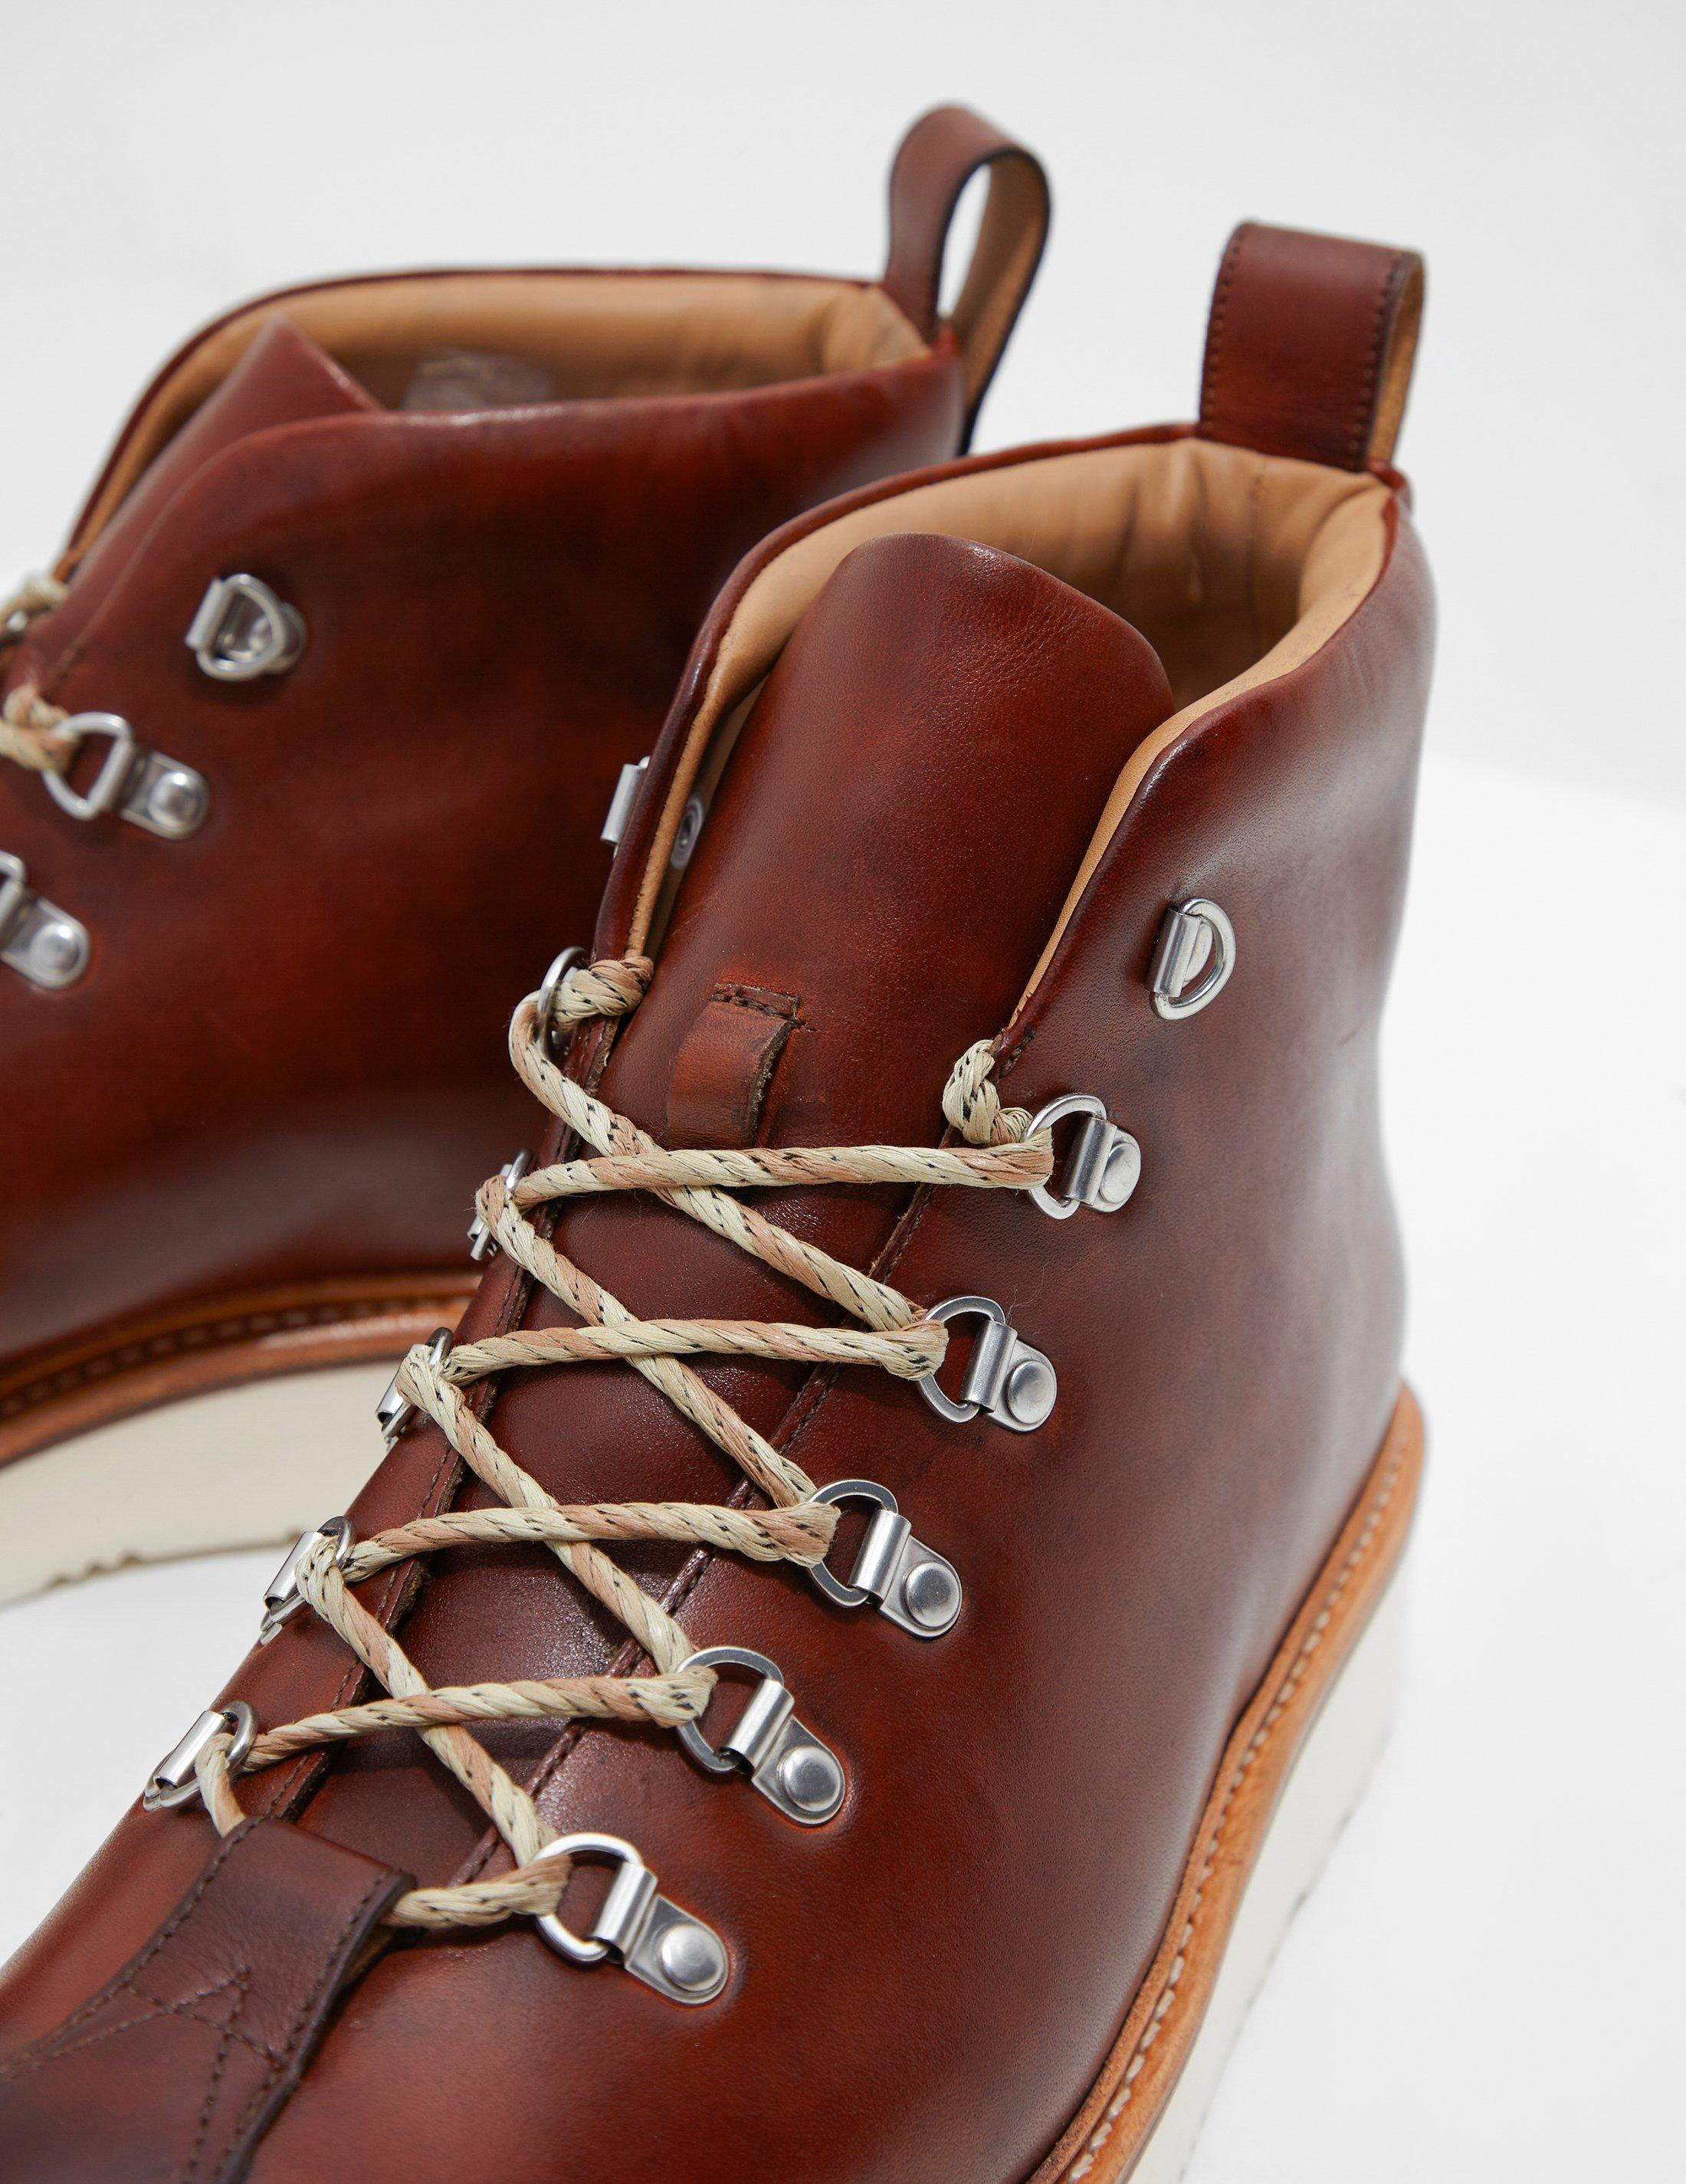 677fbf8aeb7 Lyst - Grenson Hiker Boots - Online Exclusive Brown in Brown for Men